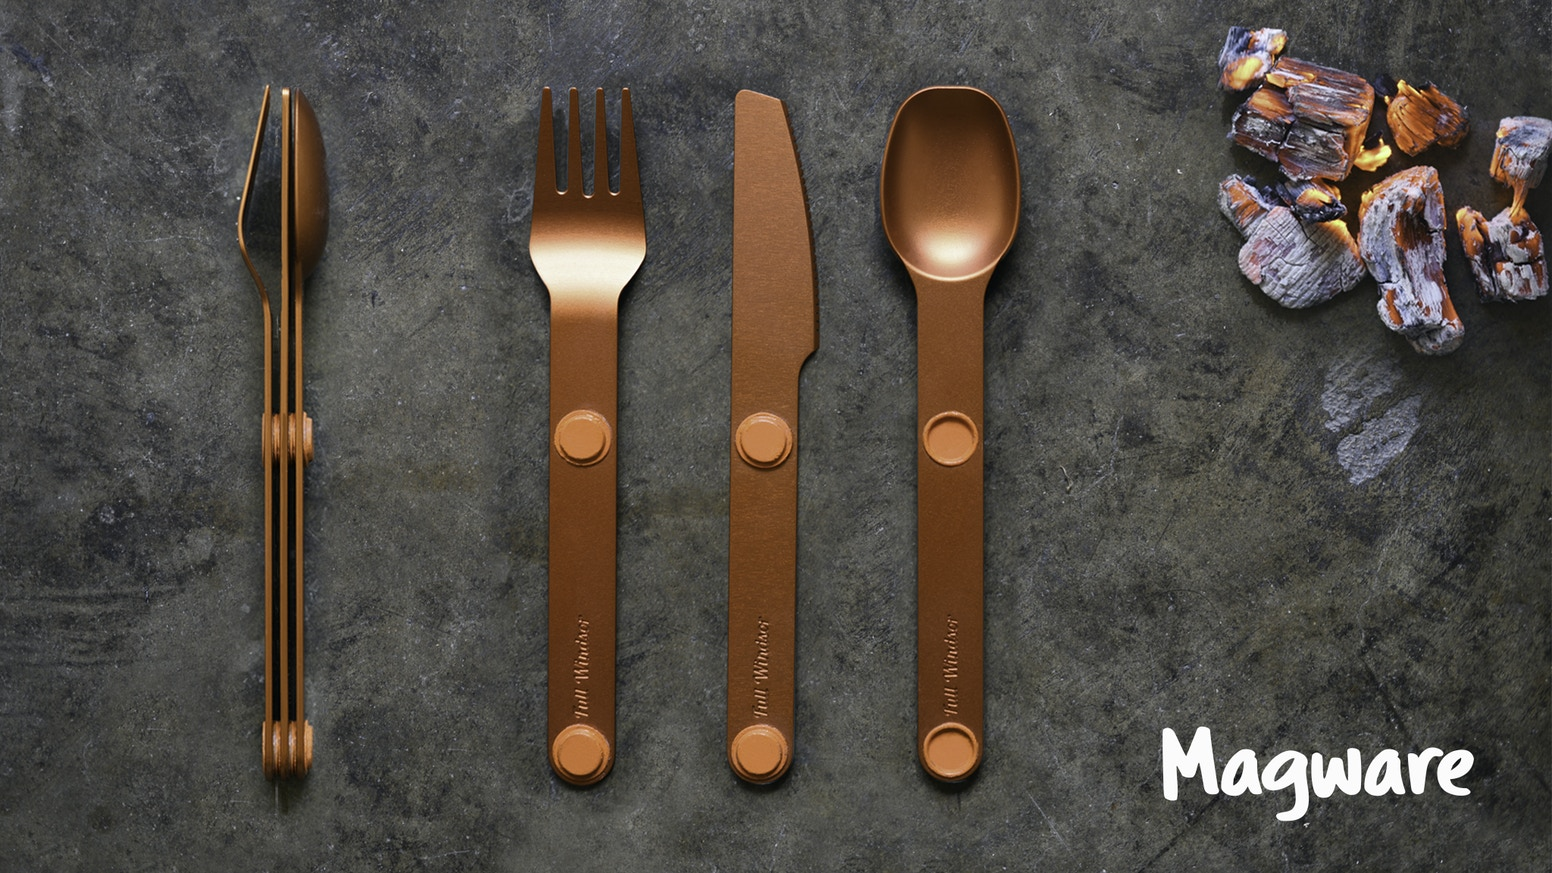 Light weight modular utensil sets that keep you organized.